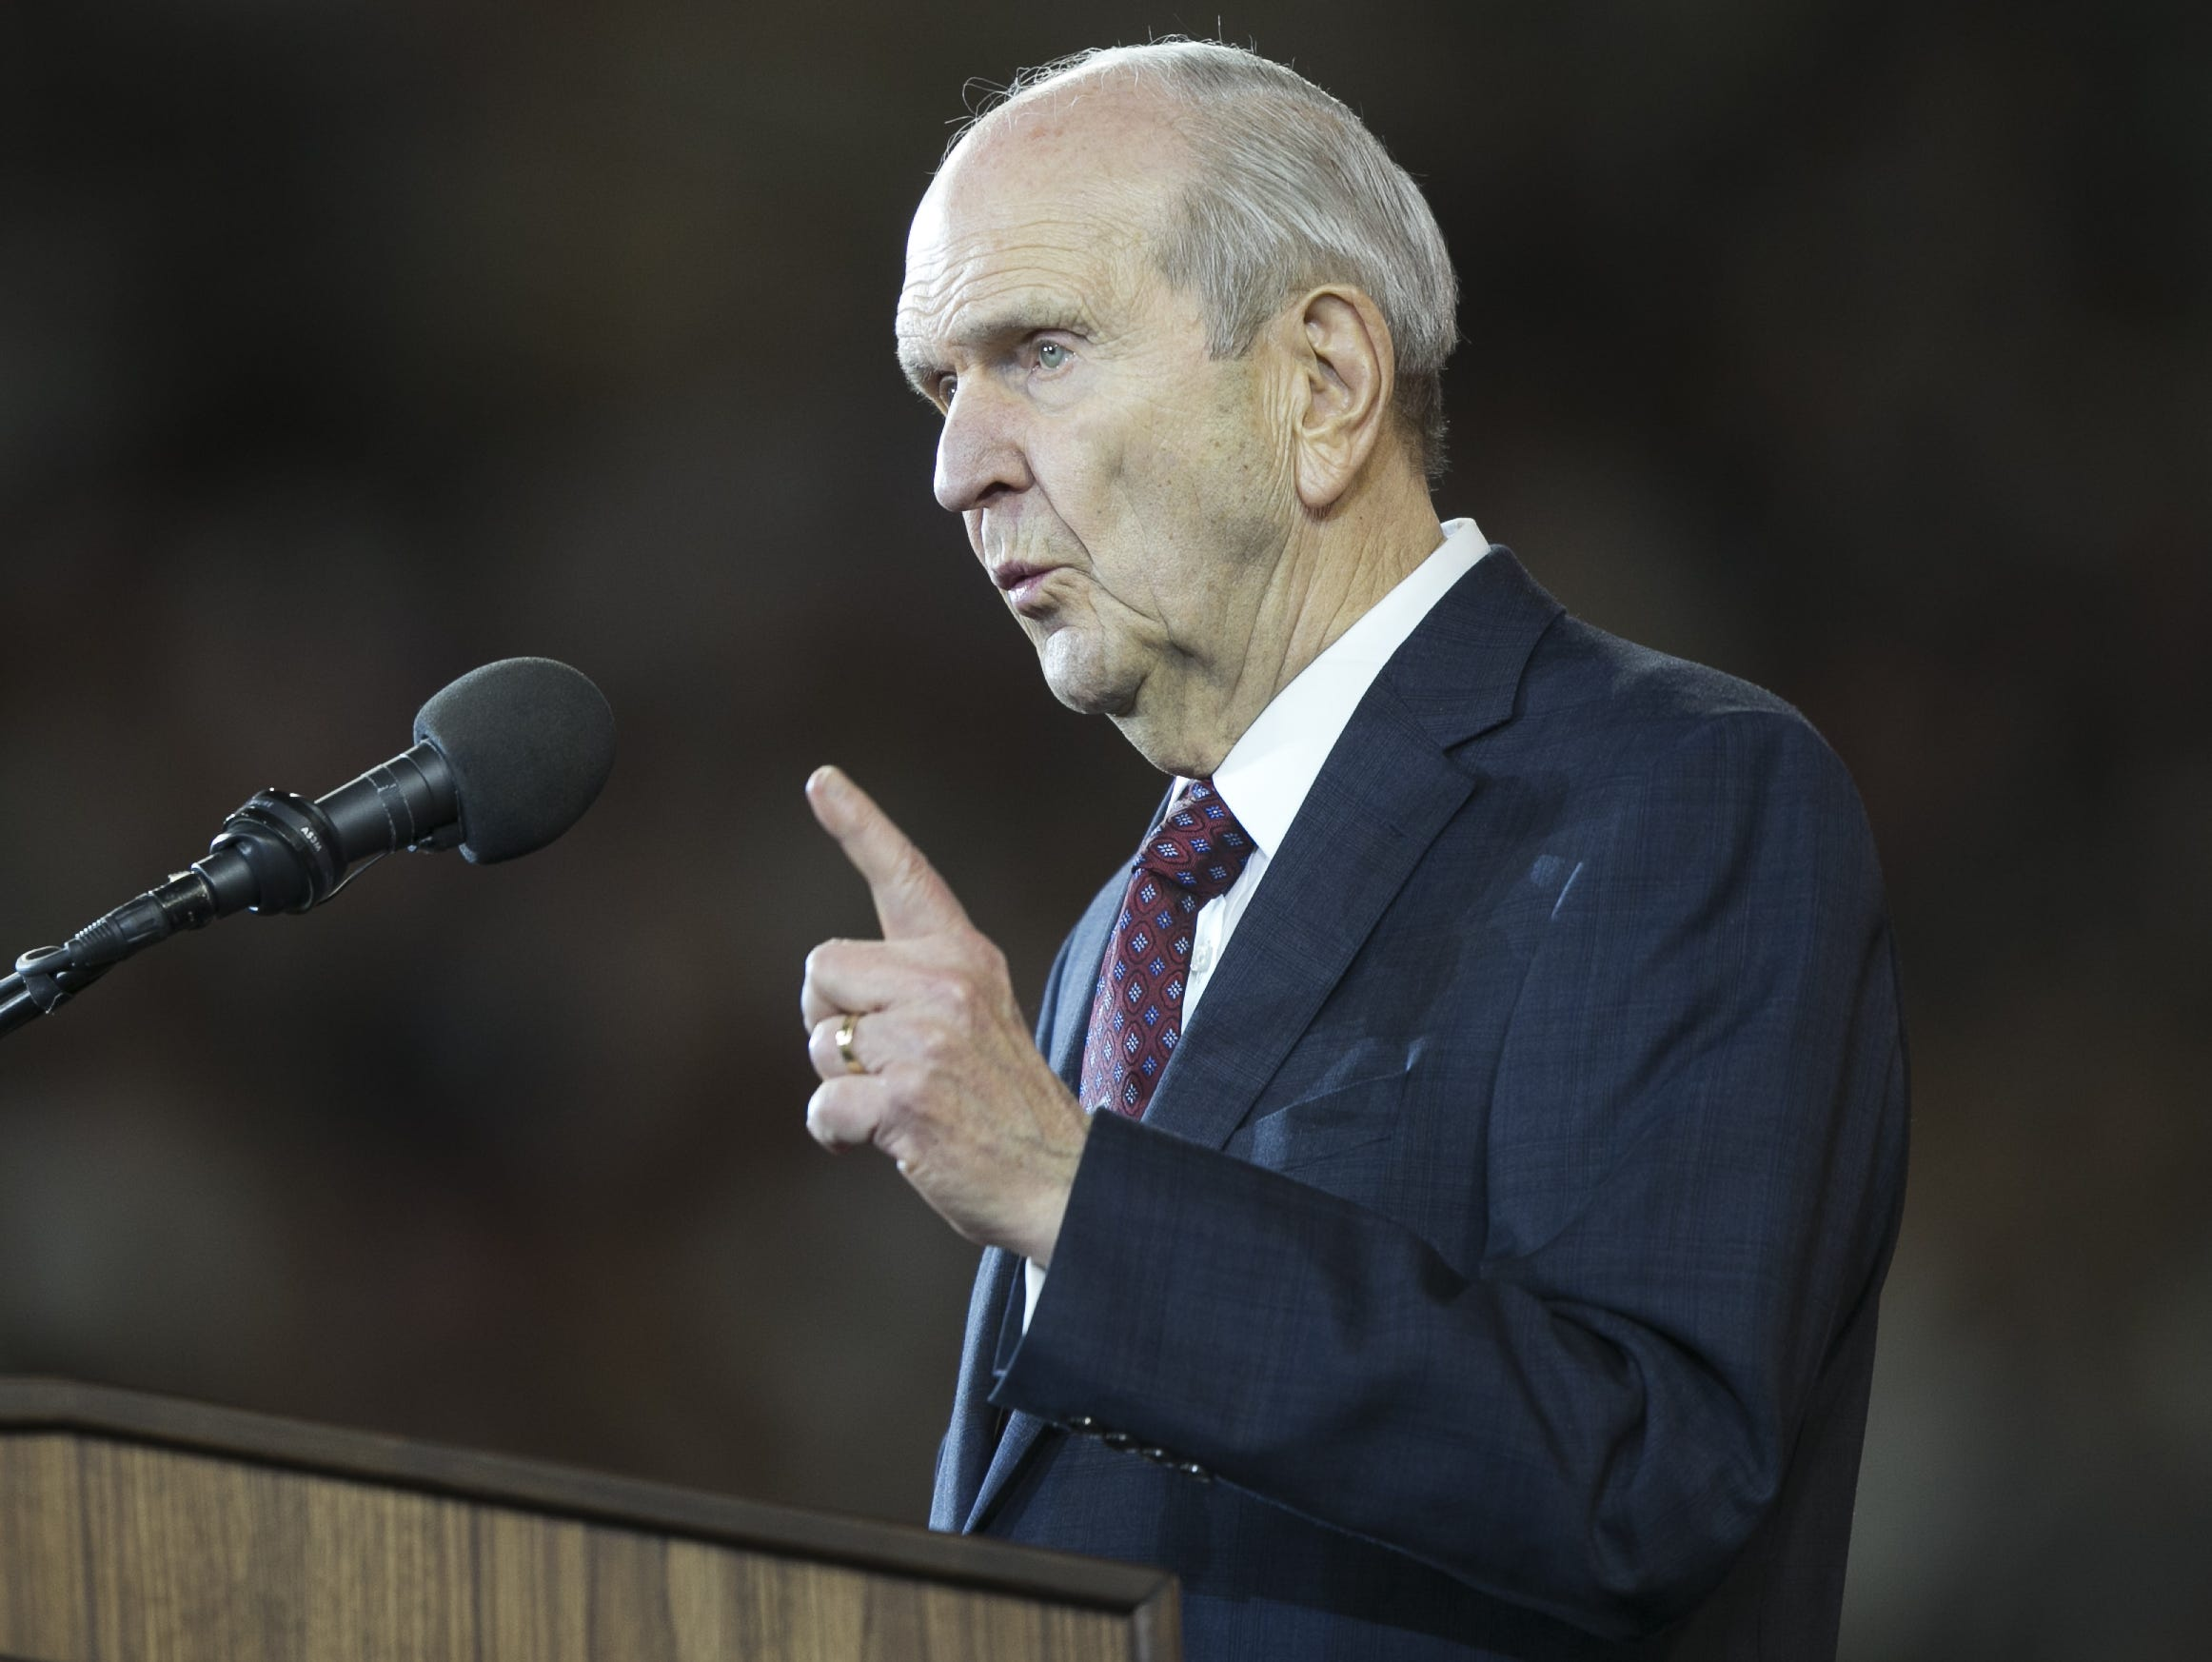 Russell Nelson, president of the Church of Jesus Christ of Latter-day Saints, speaks at a devotional at State Farm Stadium on Sunday, Feb. 10, 2019.